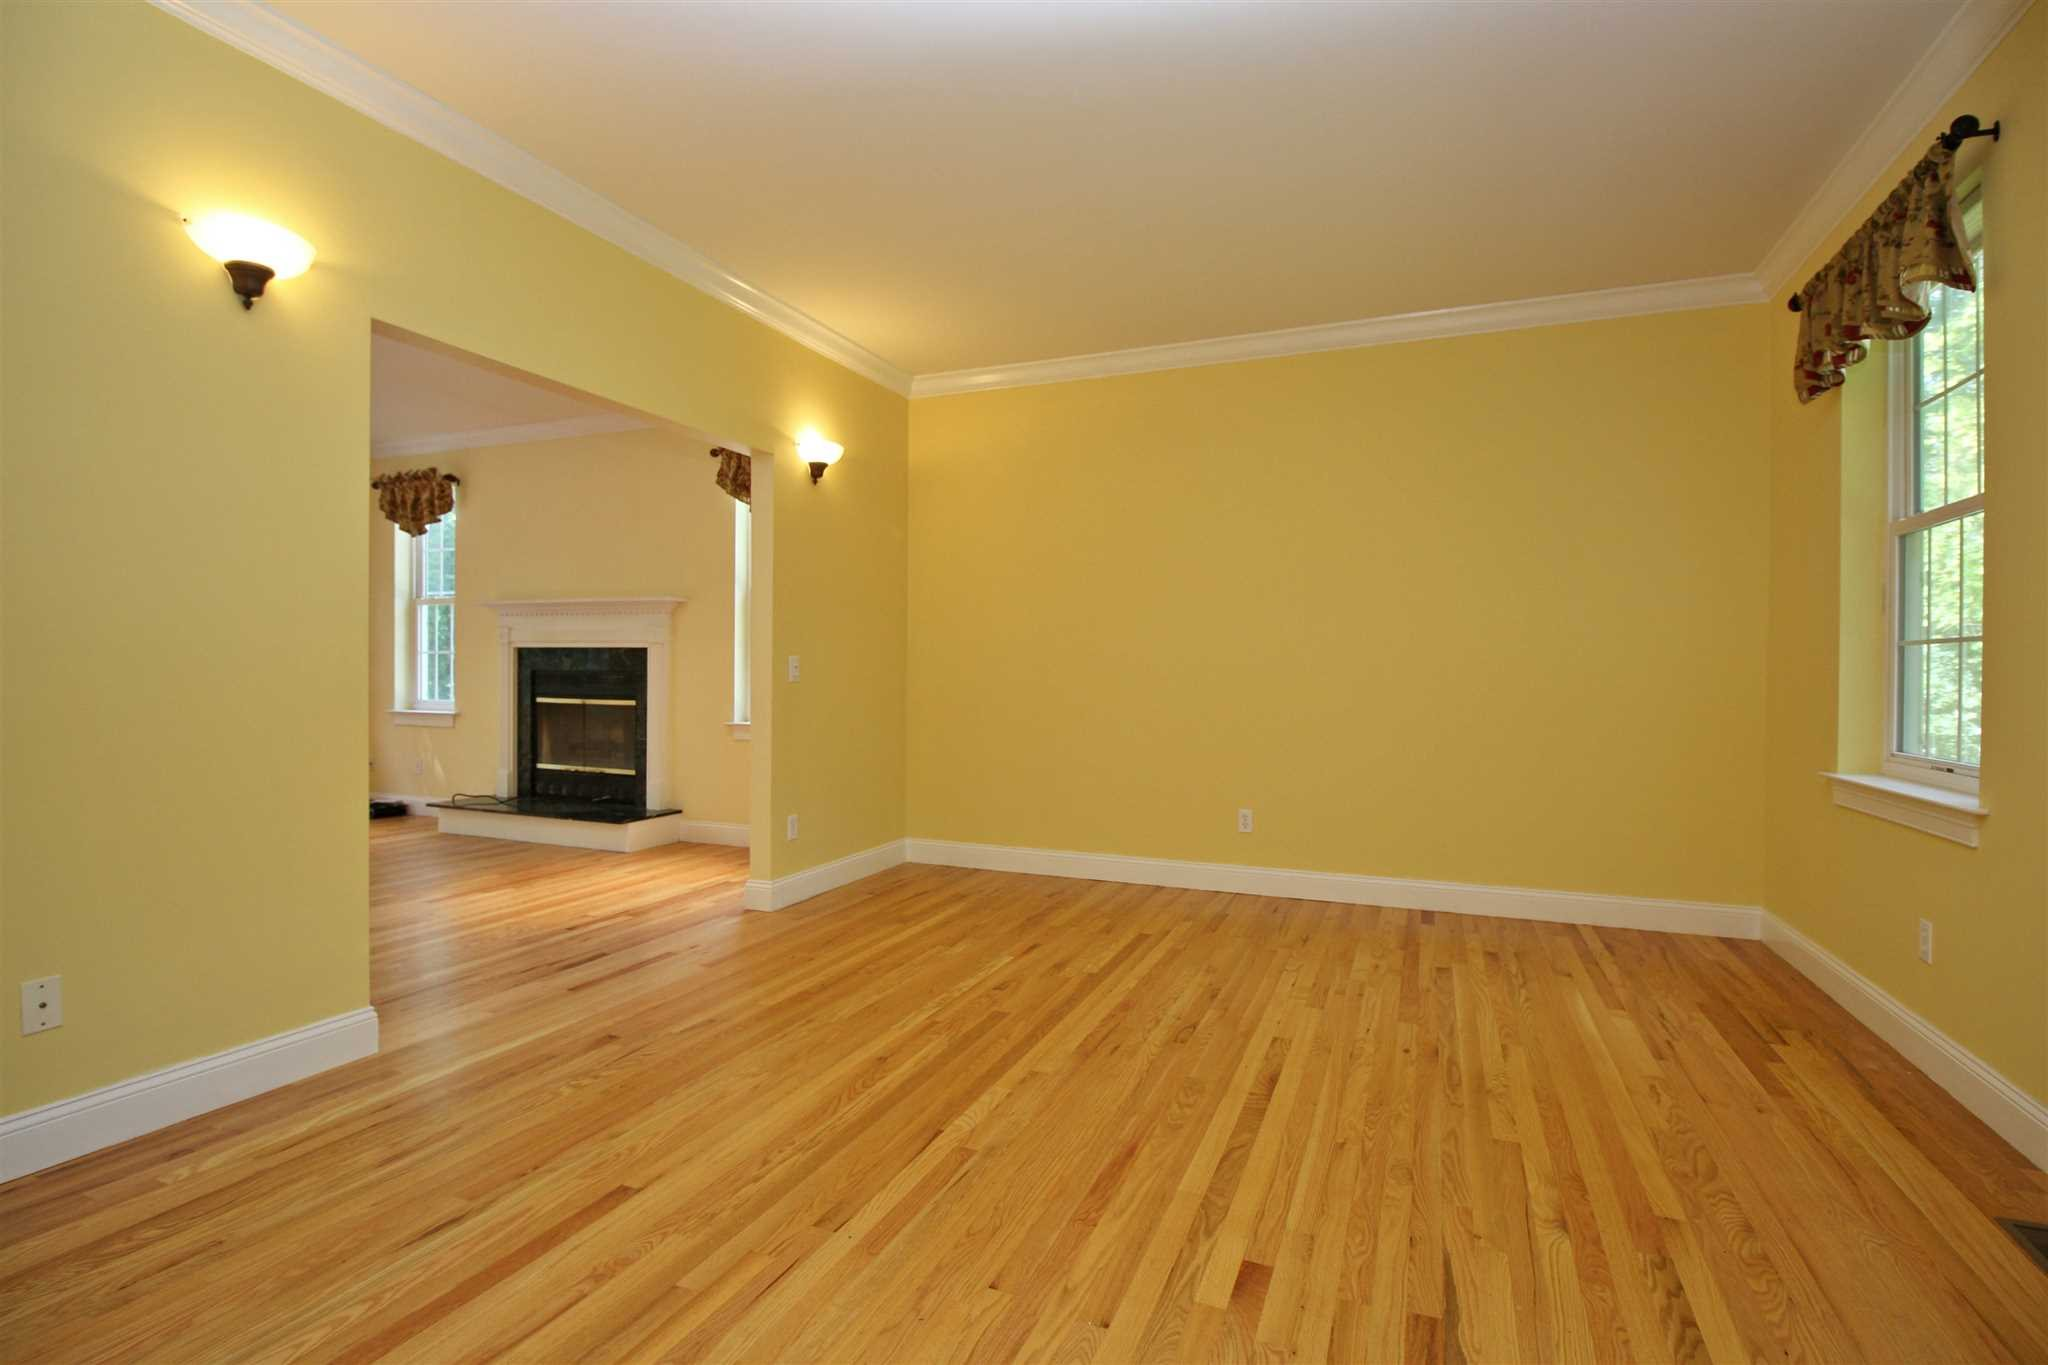 Additional photo for property listing at 152 EAST DUNCAN HILL ROAD 152 EAST DUNCAN HILL ROAD Dover Plains, New York 12522 United States